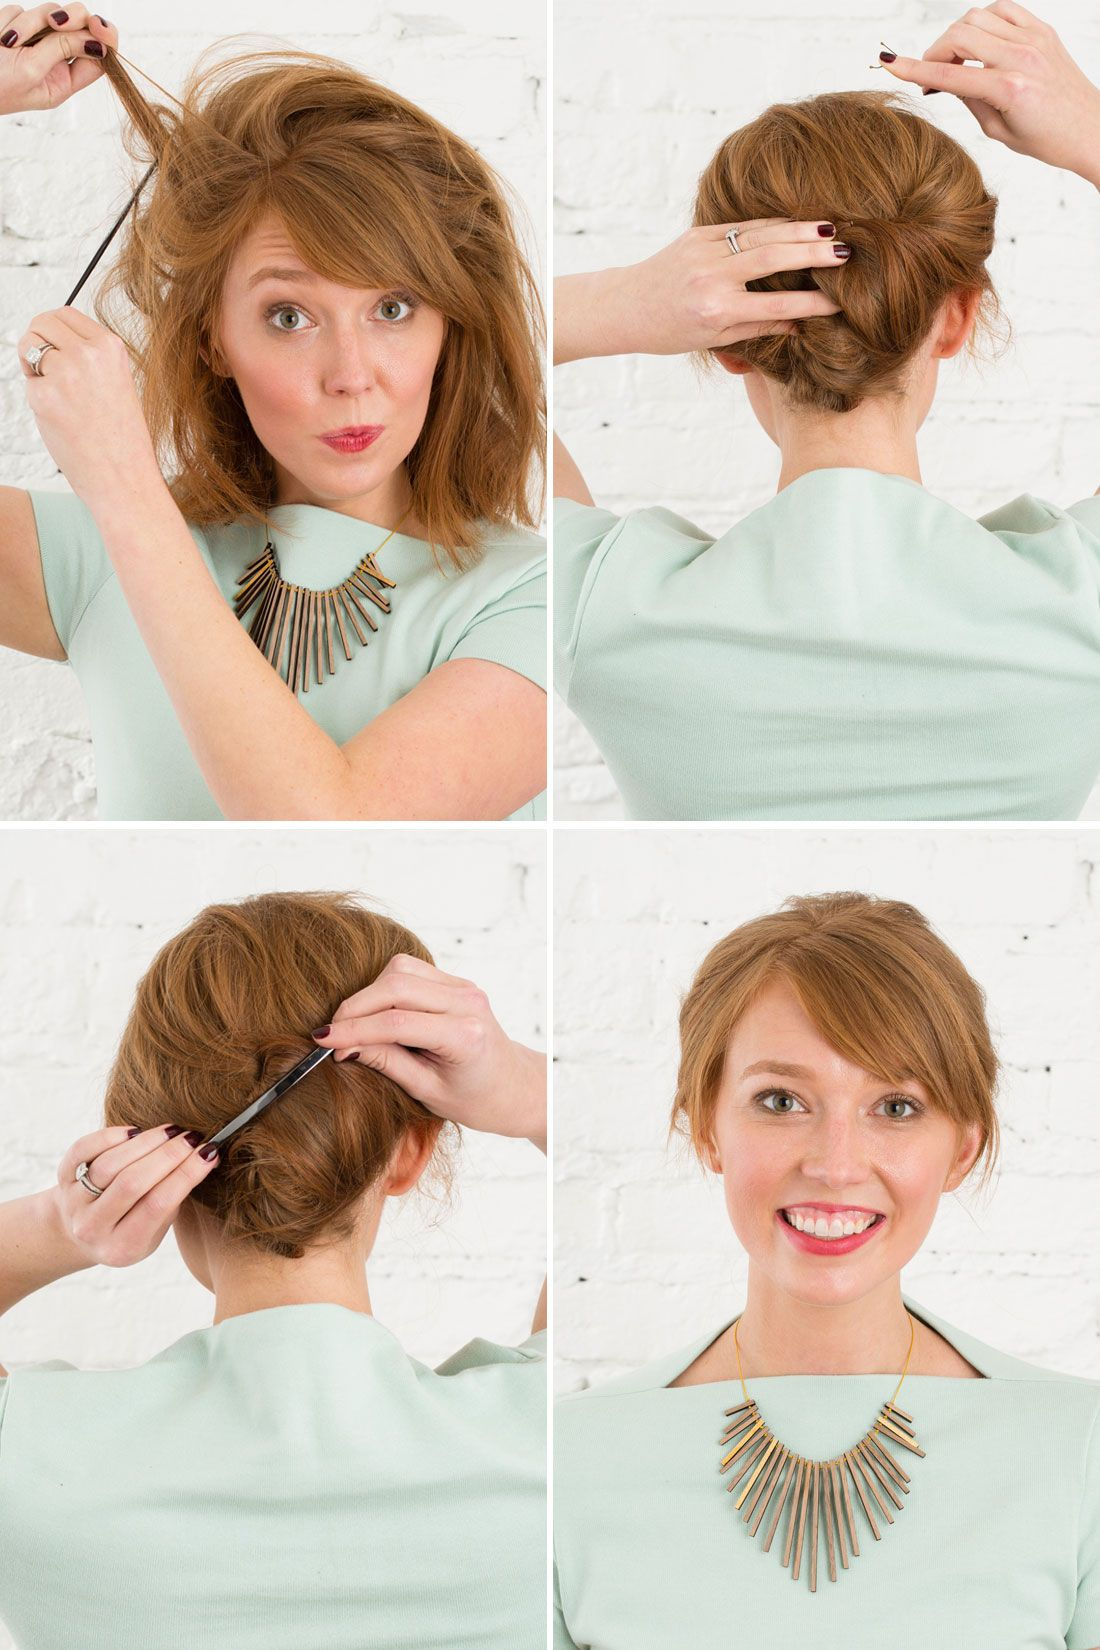 Barrette Hairstyles Amazing 3 Easy 5Minute Hairstyles Using Emma Stone's Metal Barrette  Updo